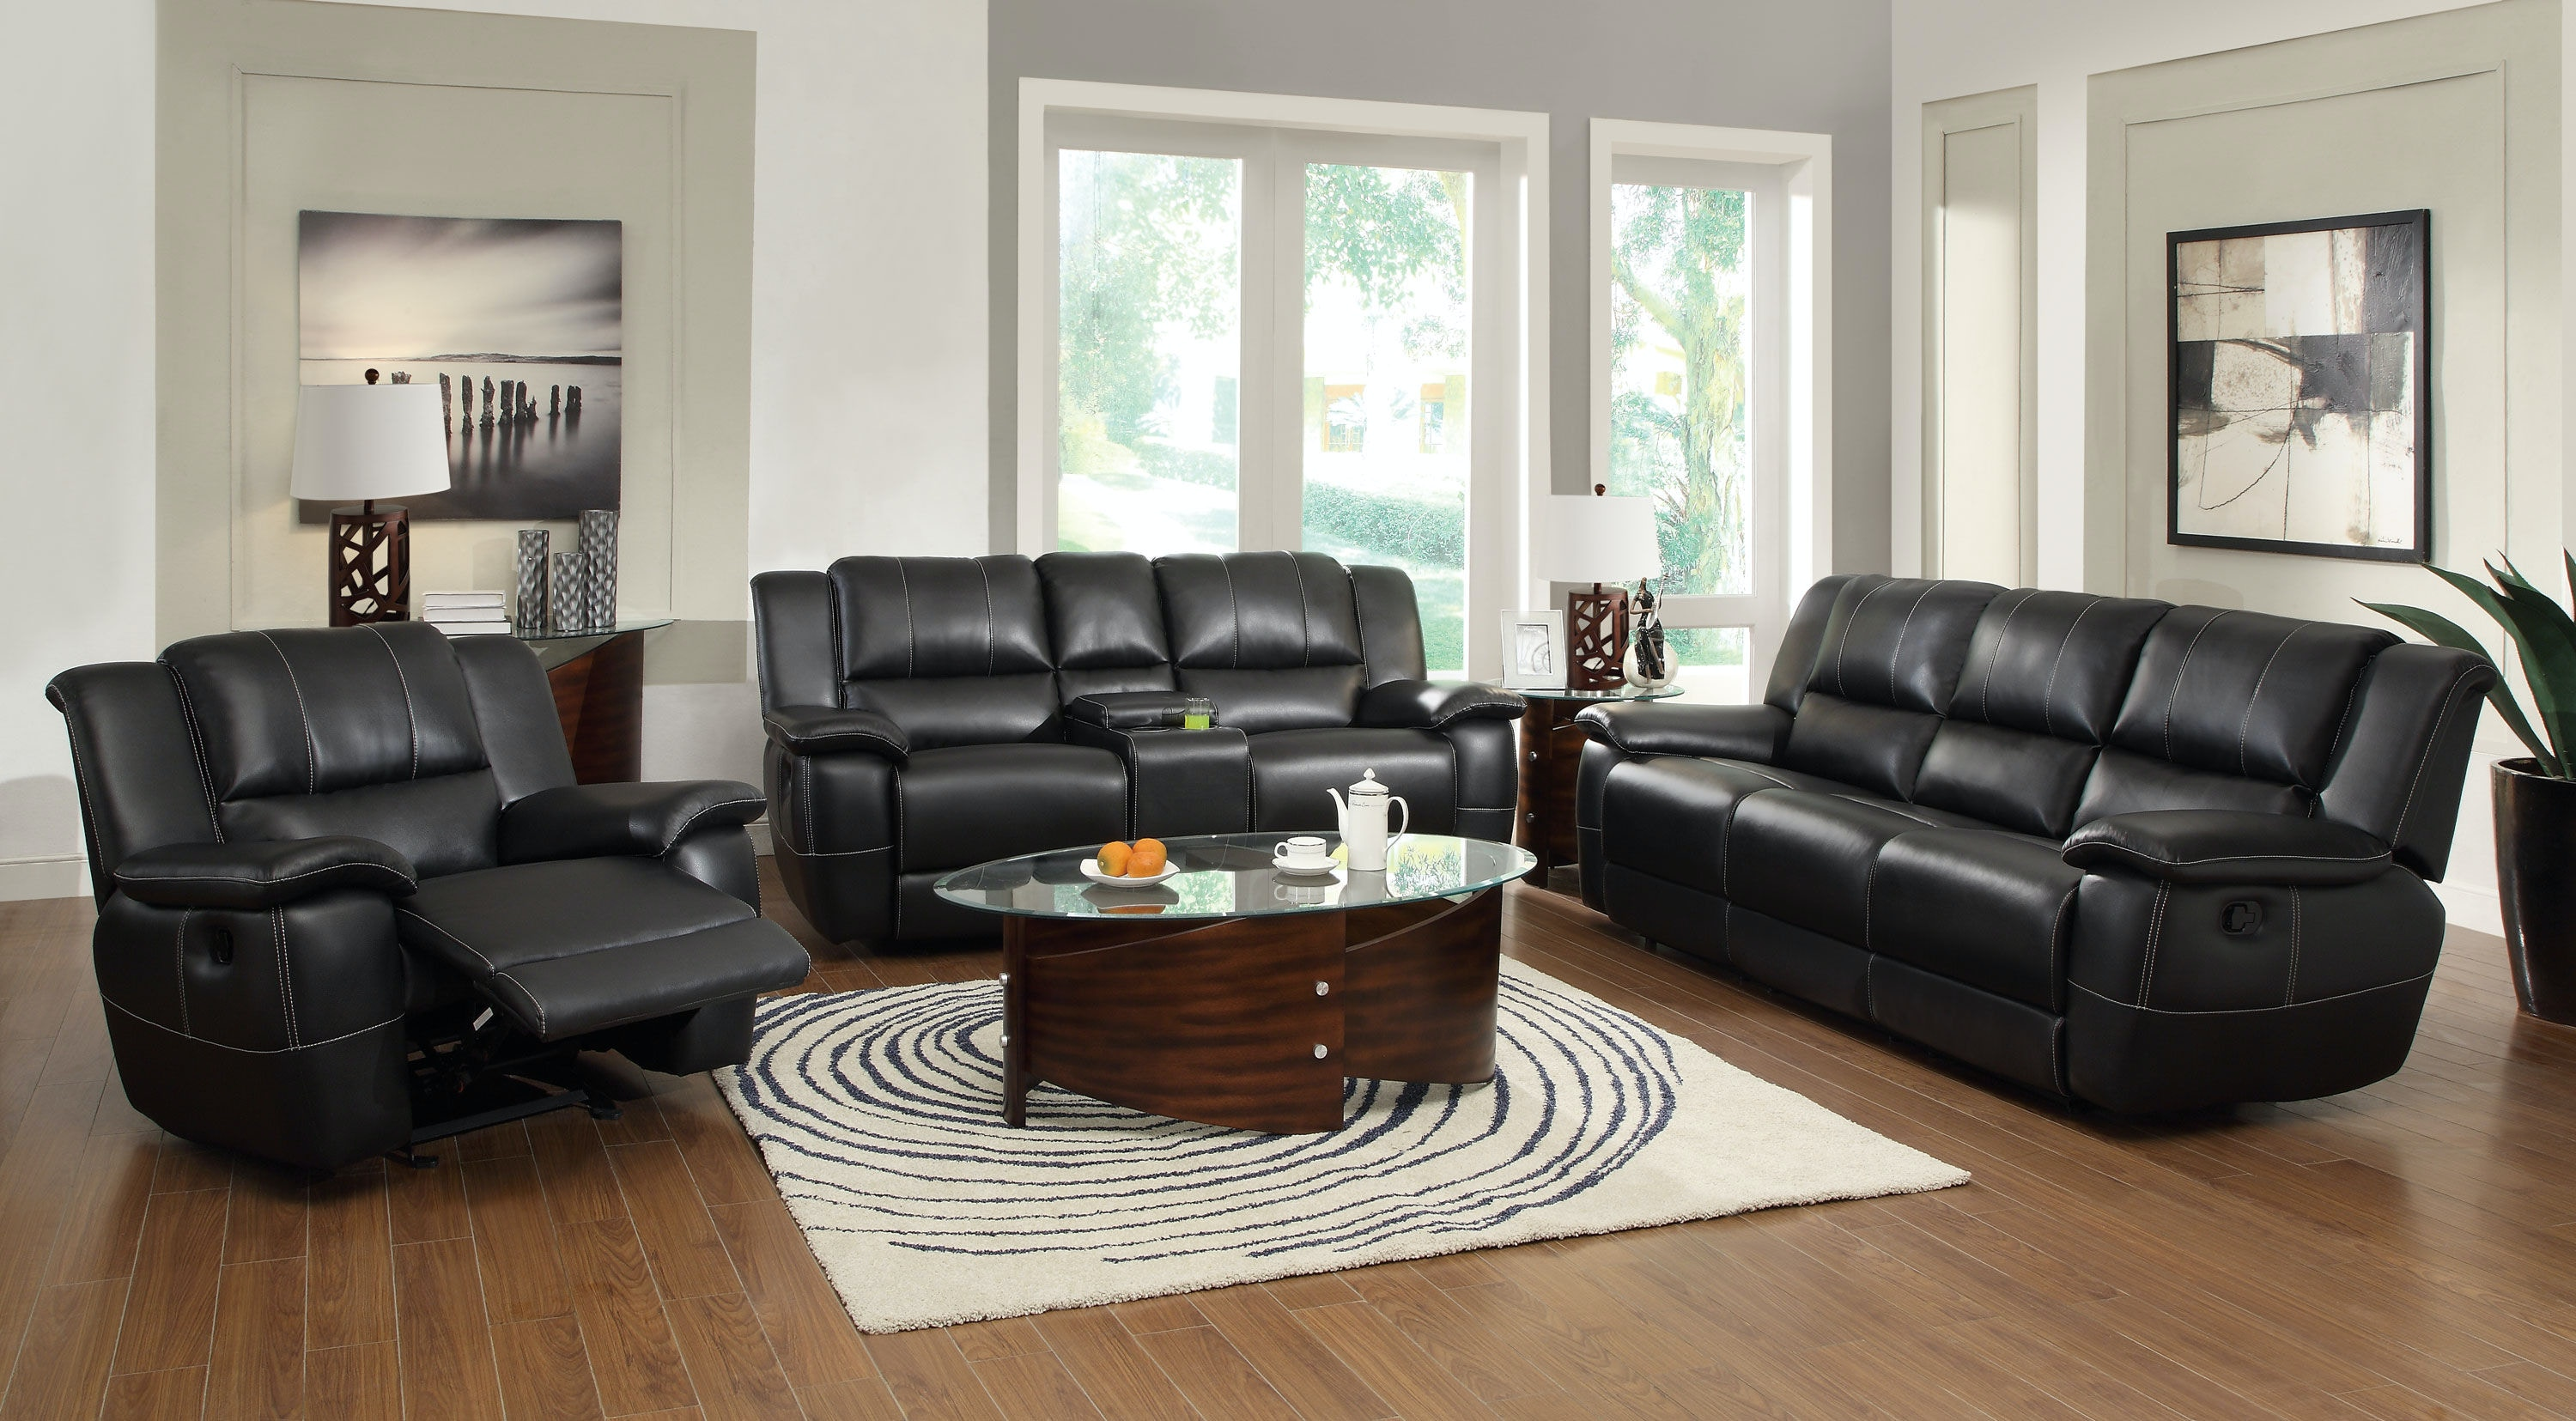 coaster living room motion sofa 601061 - the furniture house of, Hause deko